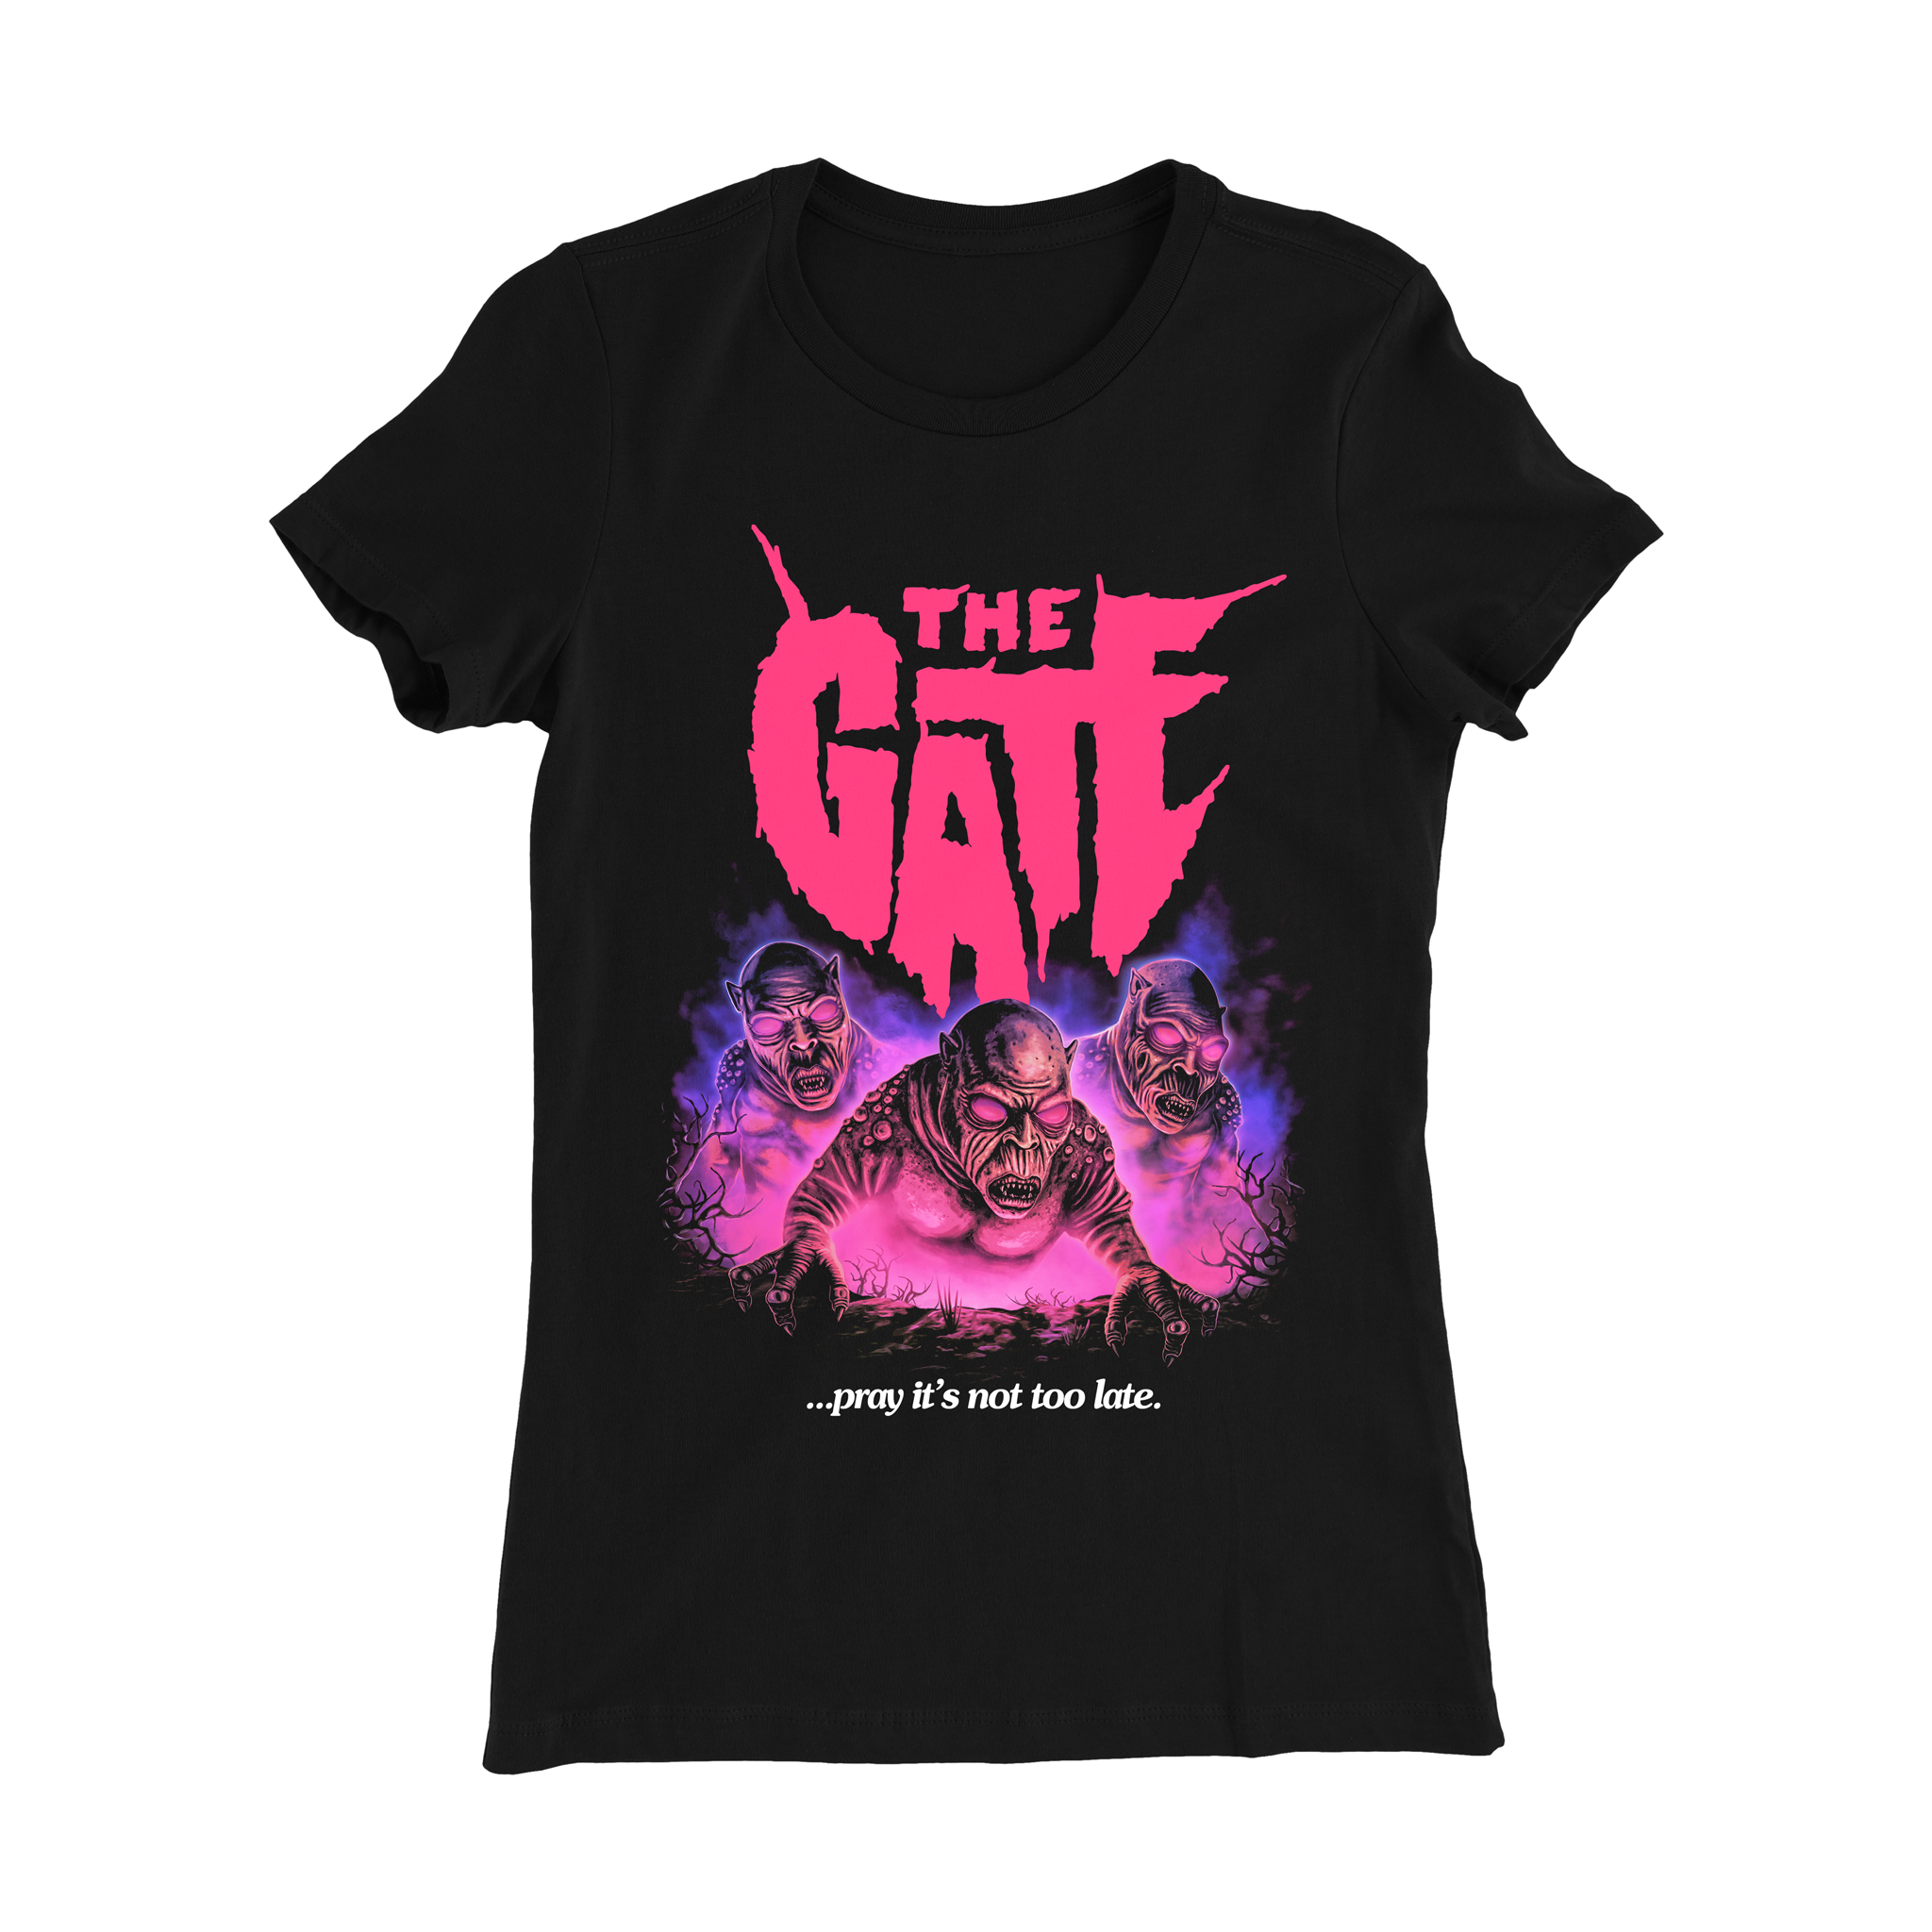 The Gate: Minions - Woman's Fit T-Shirt